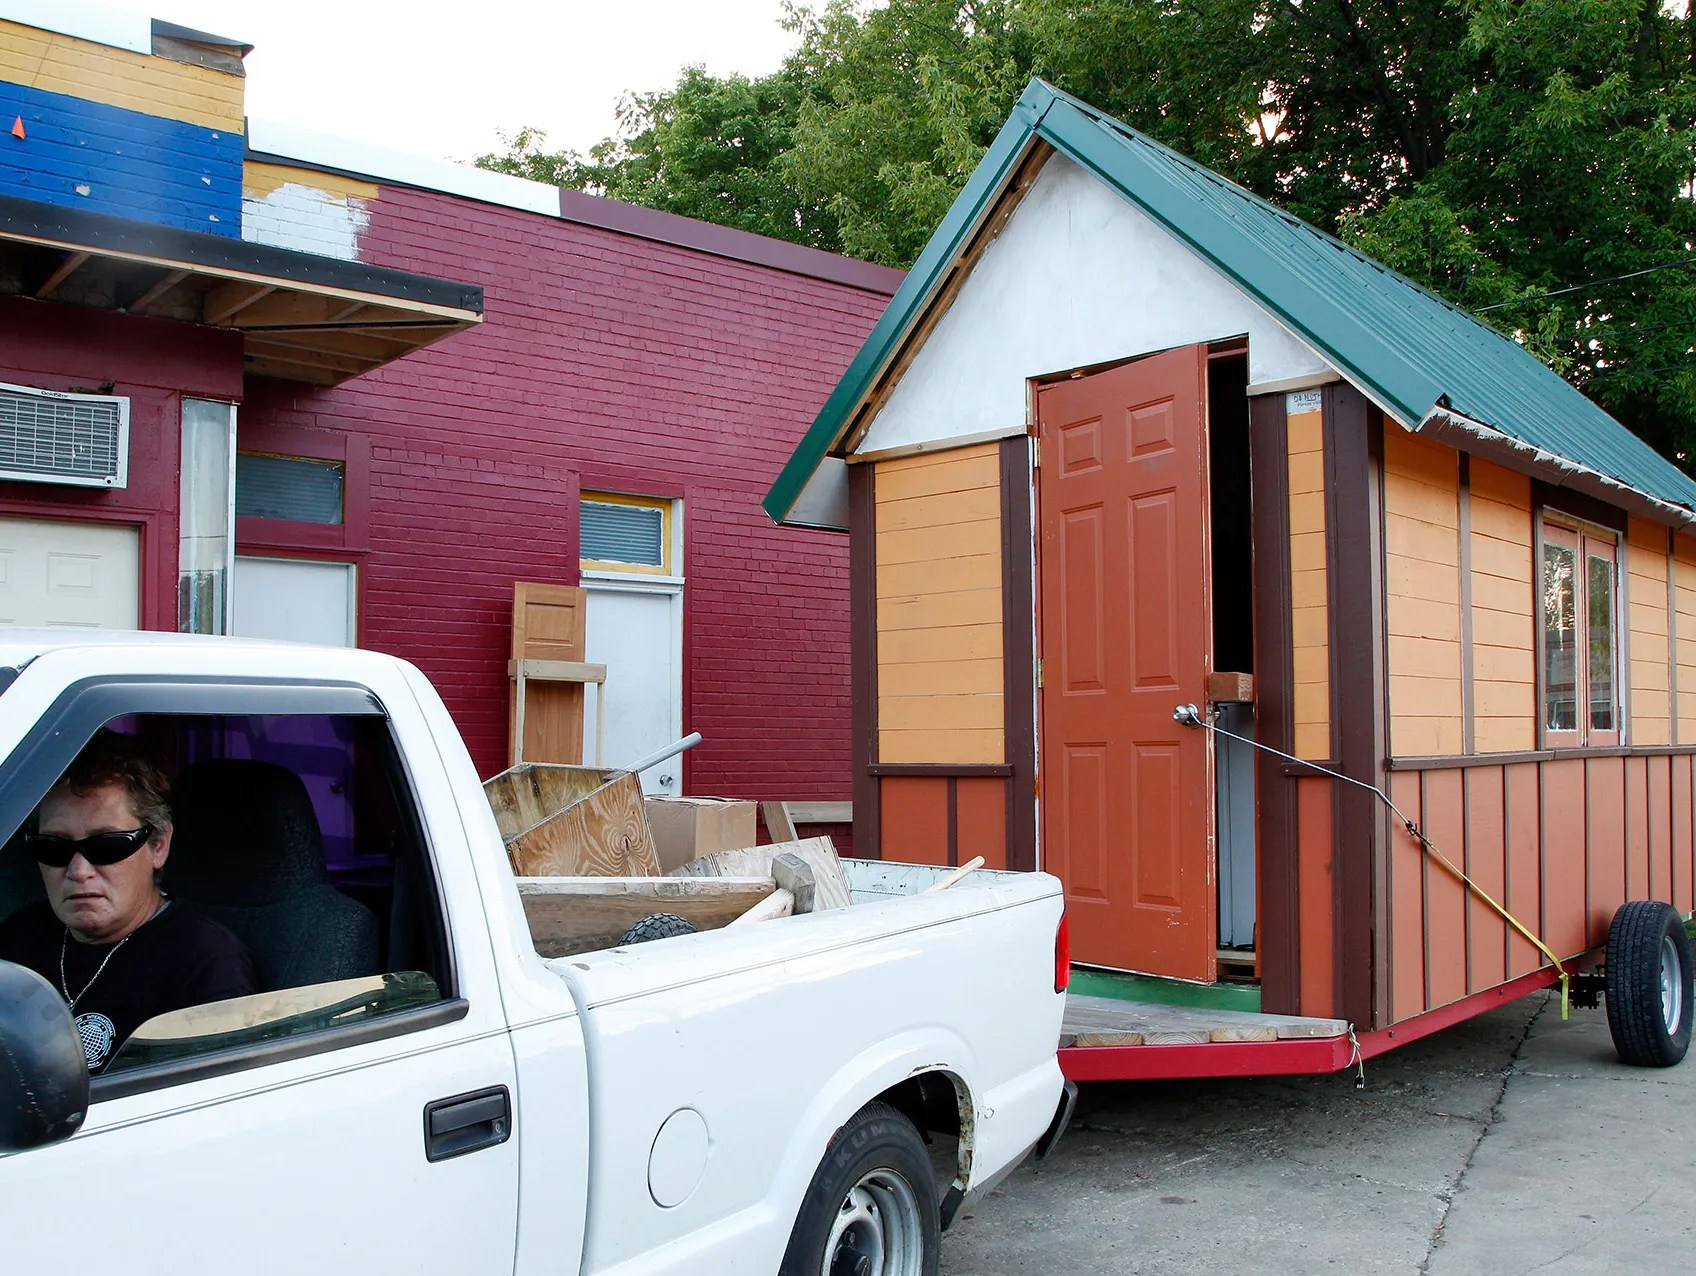 Tiny Houses Aim To Help Homeless